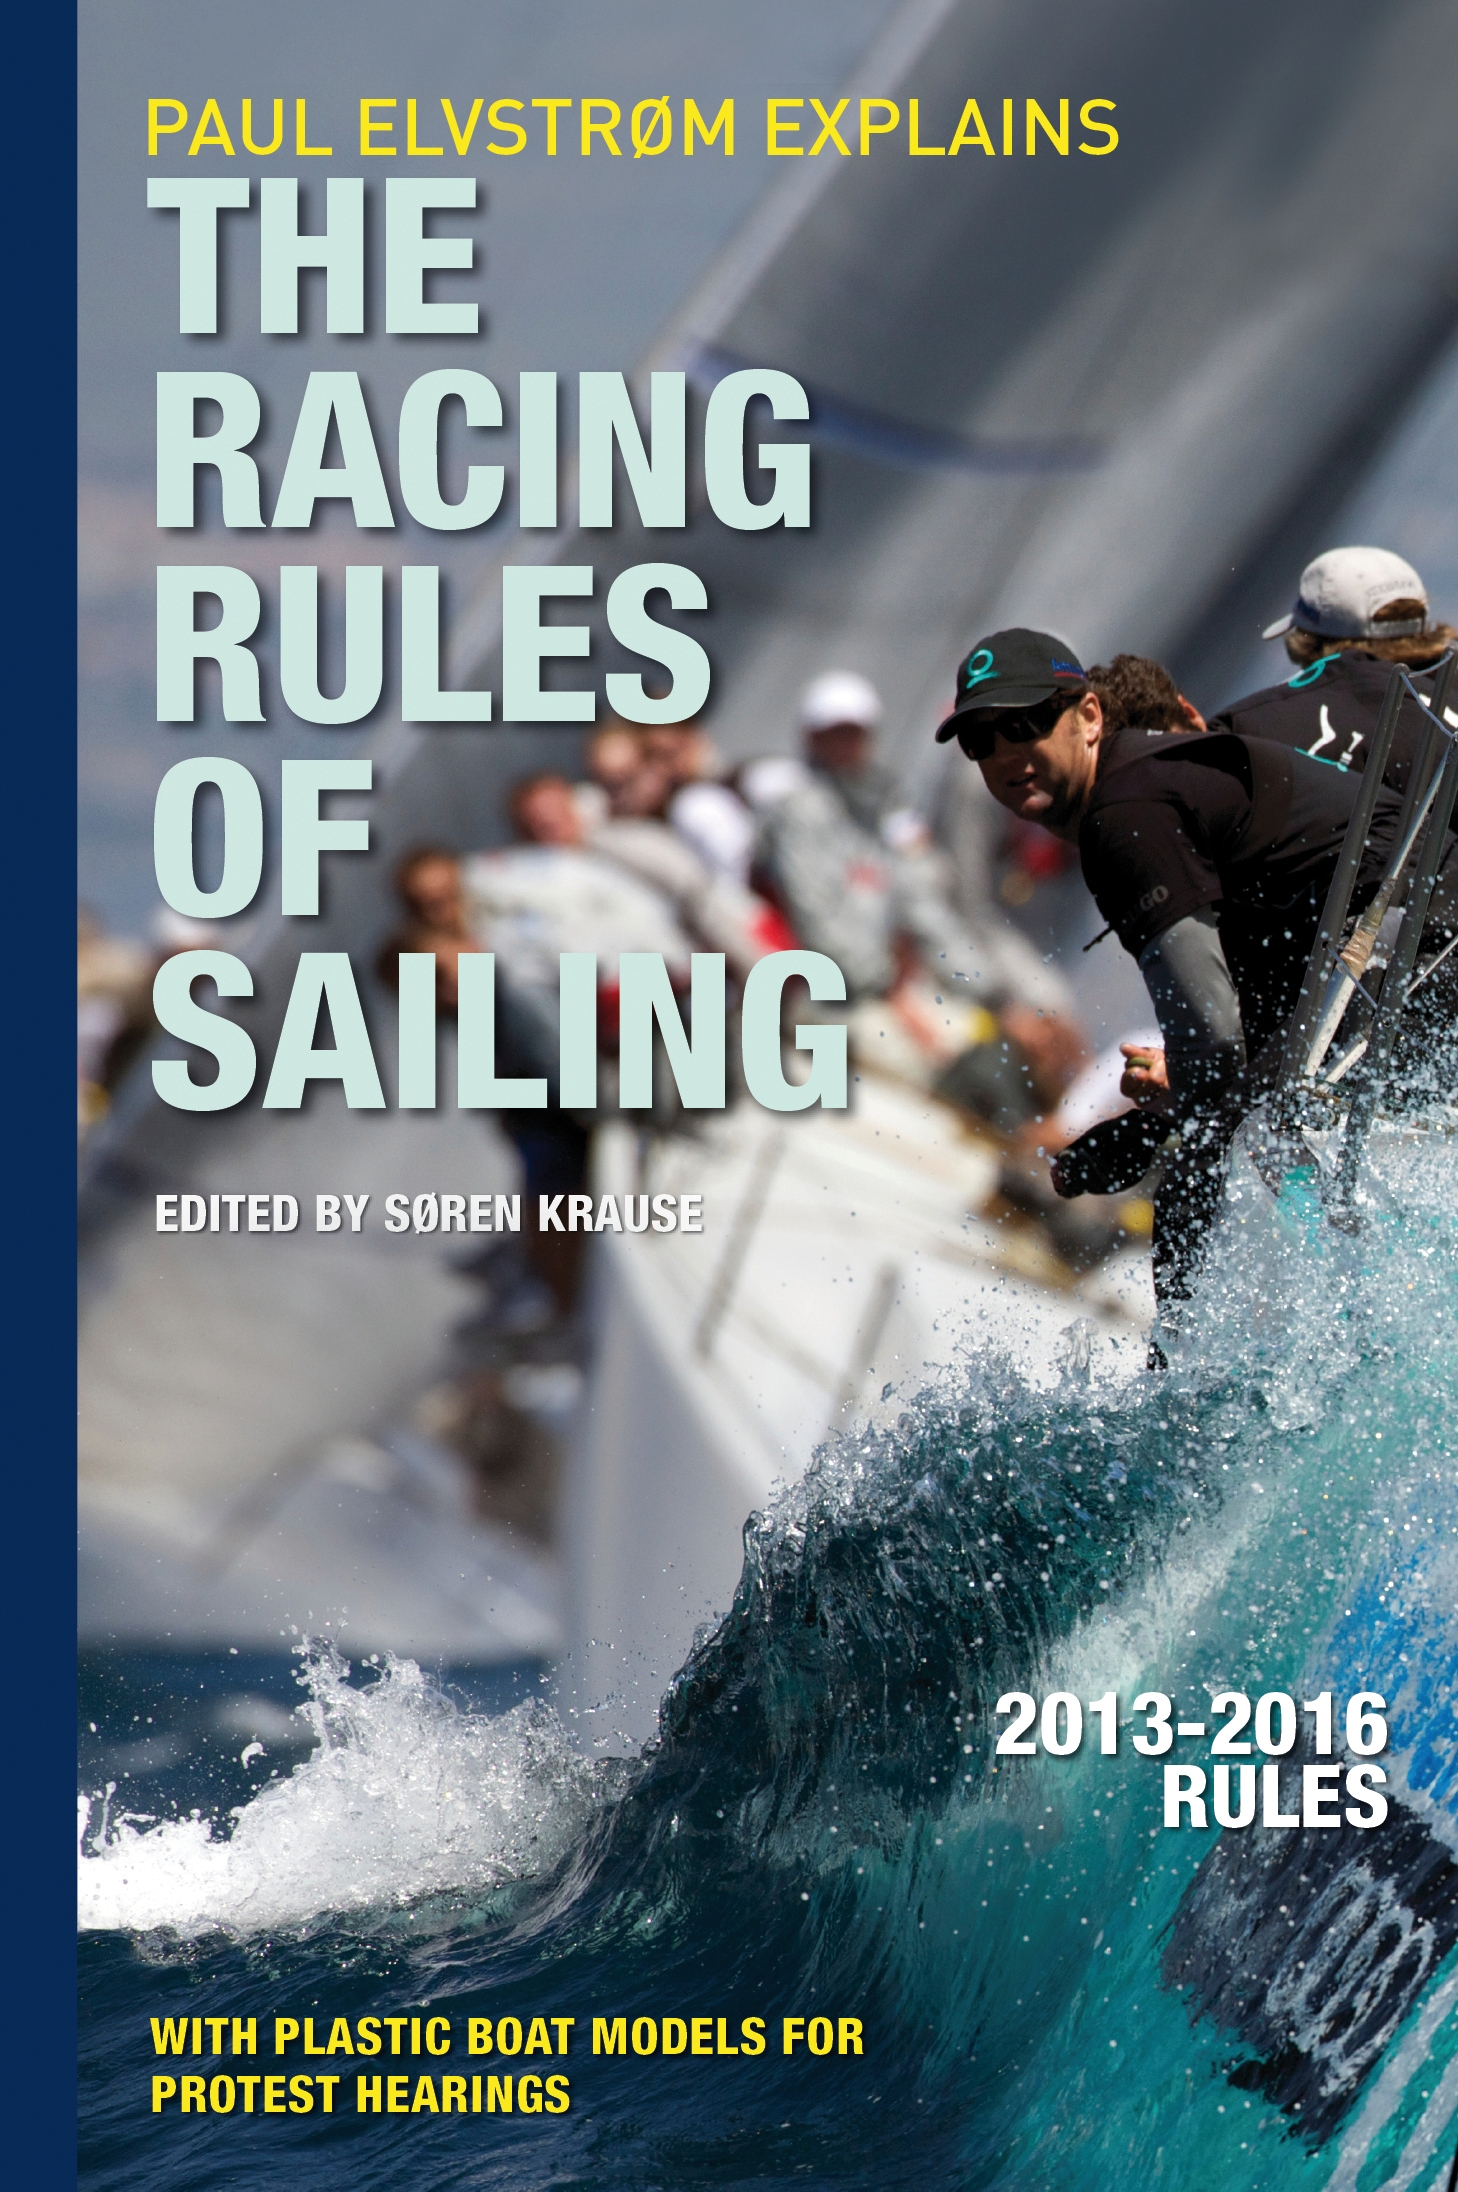 Paul Elvstrom Explains the Racing Rules of Sailing Complete 2013-2016 Rules